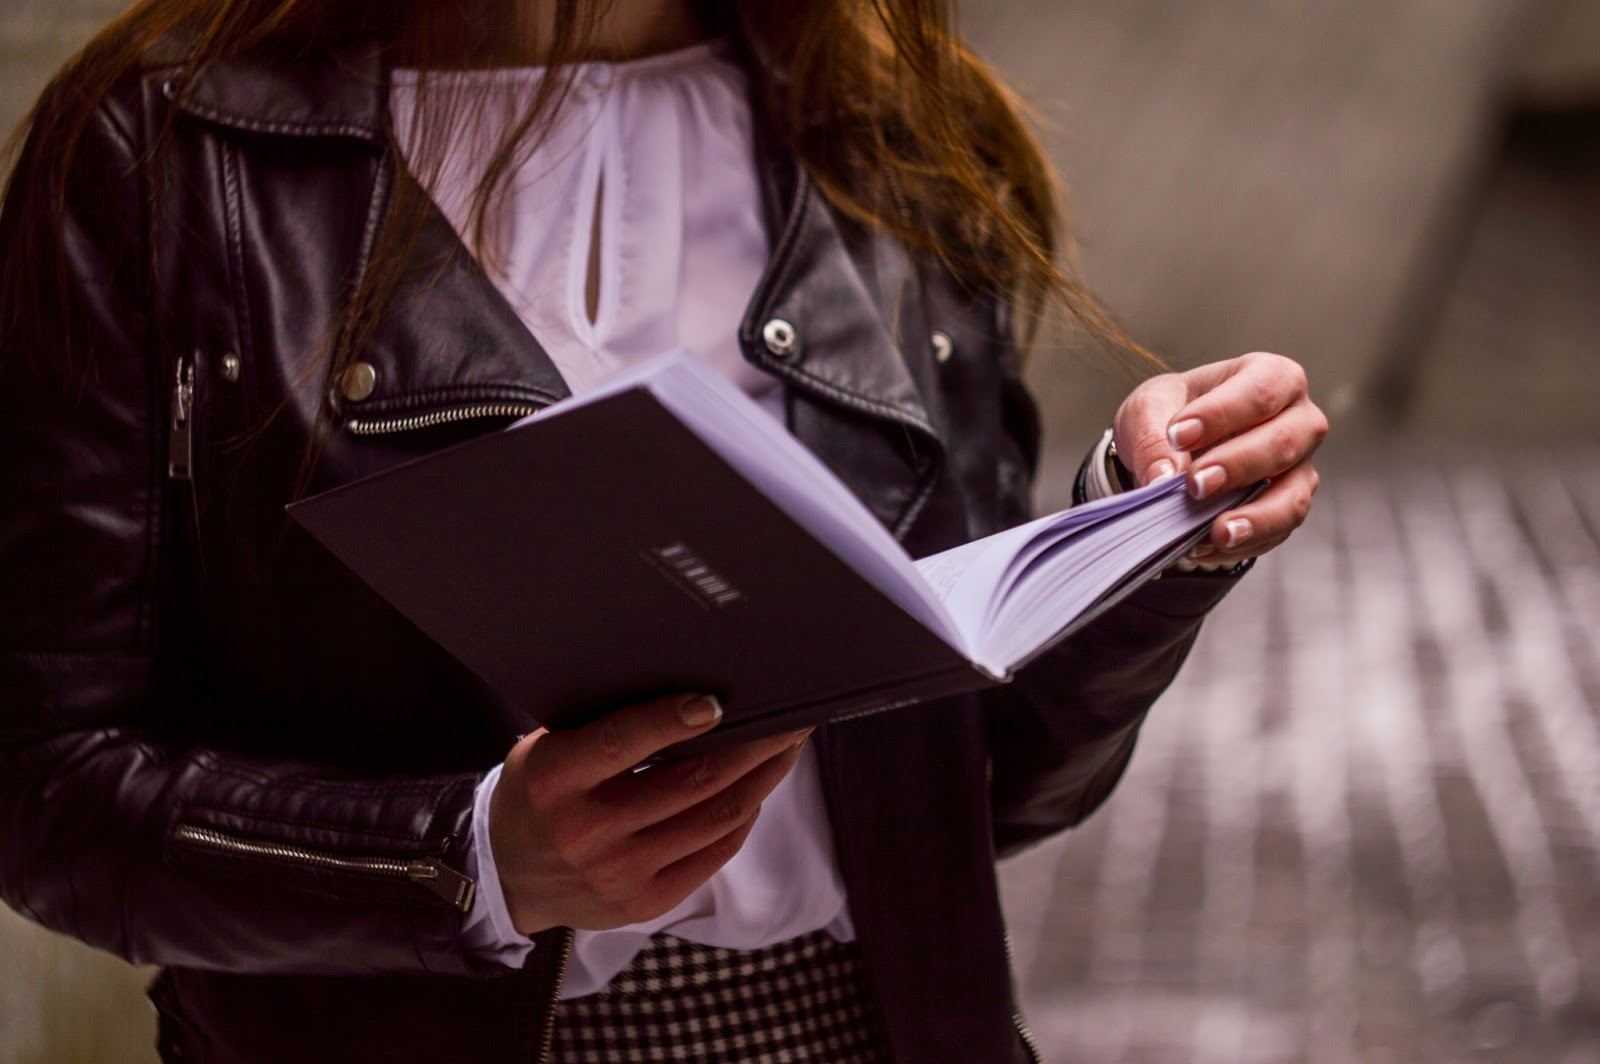 girl in a leather jacket revising from a book